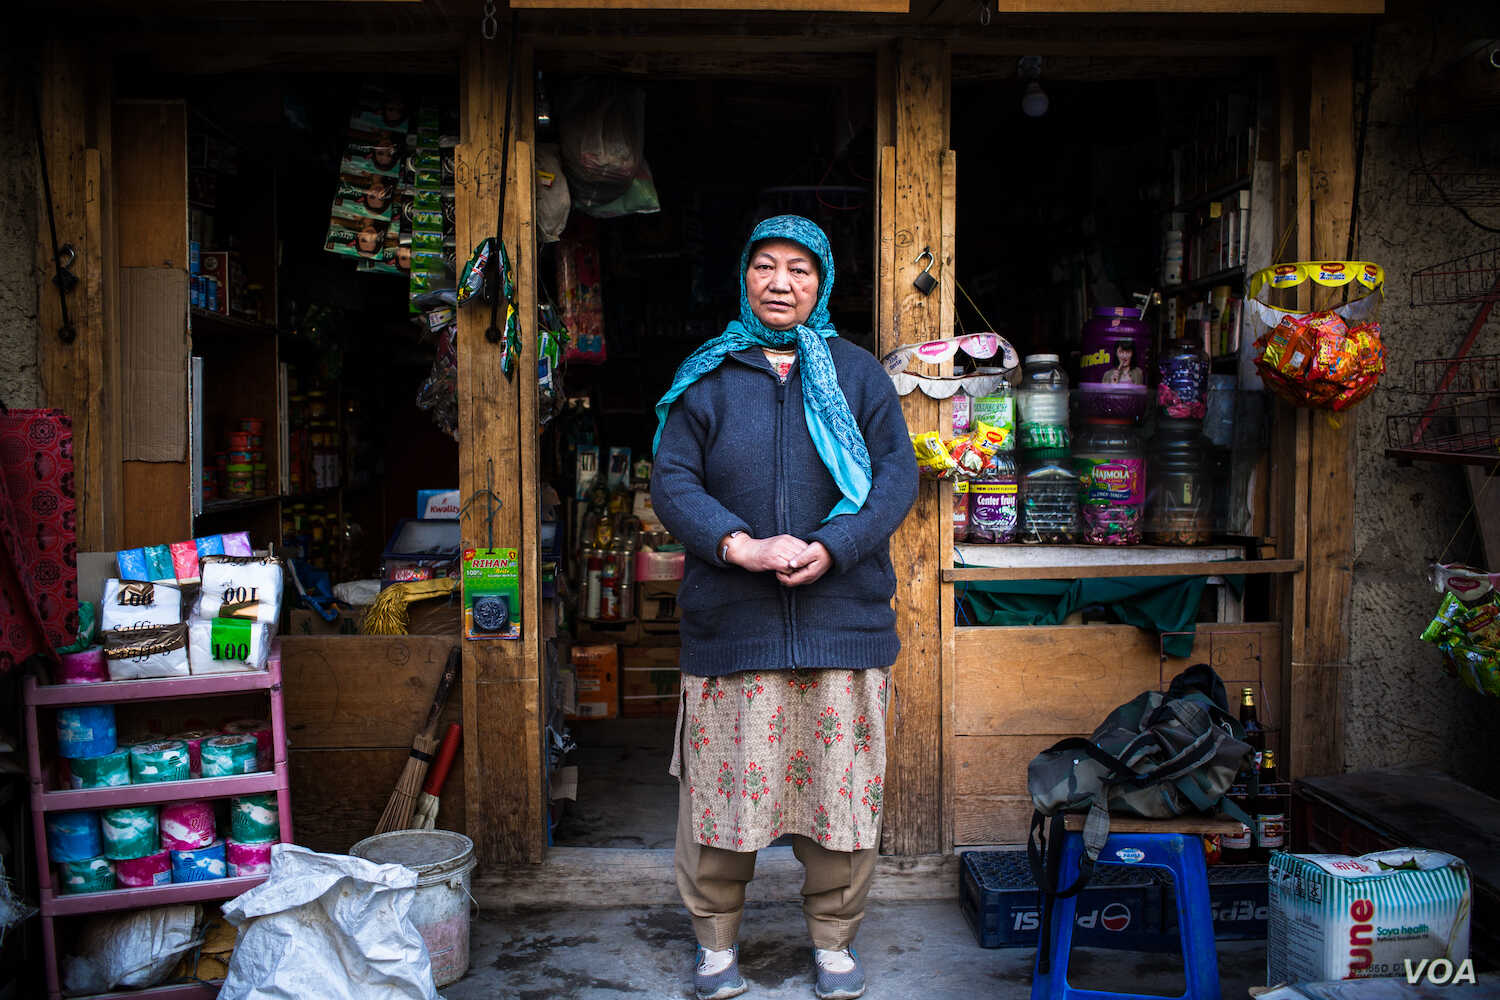 Syada Bano, a shopkeeper in Leh, said she converted to Islam when she got married at age 16 and has no regrets.